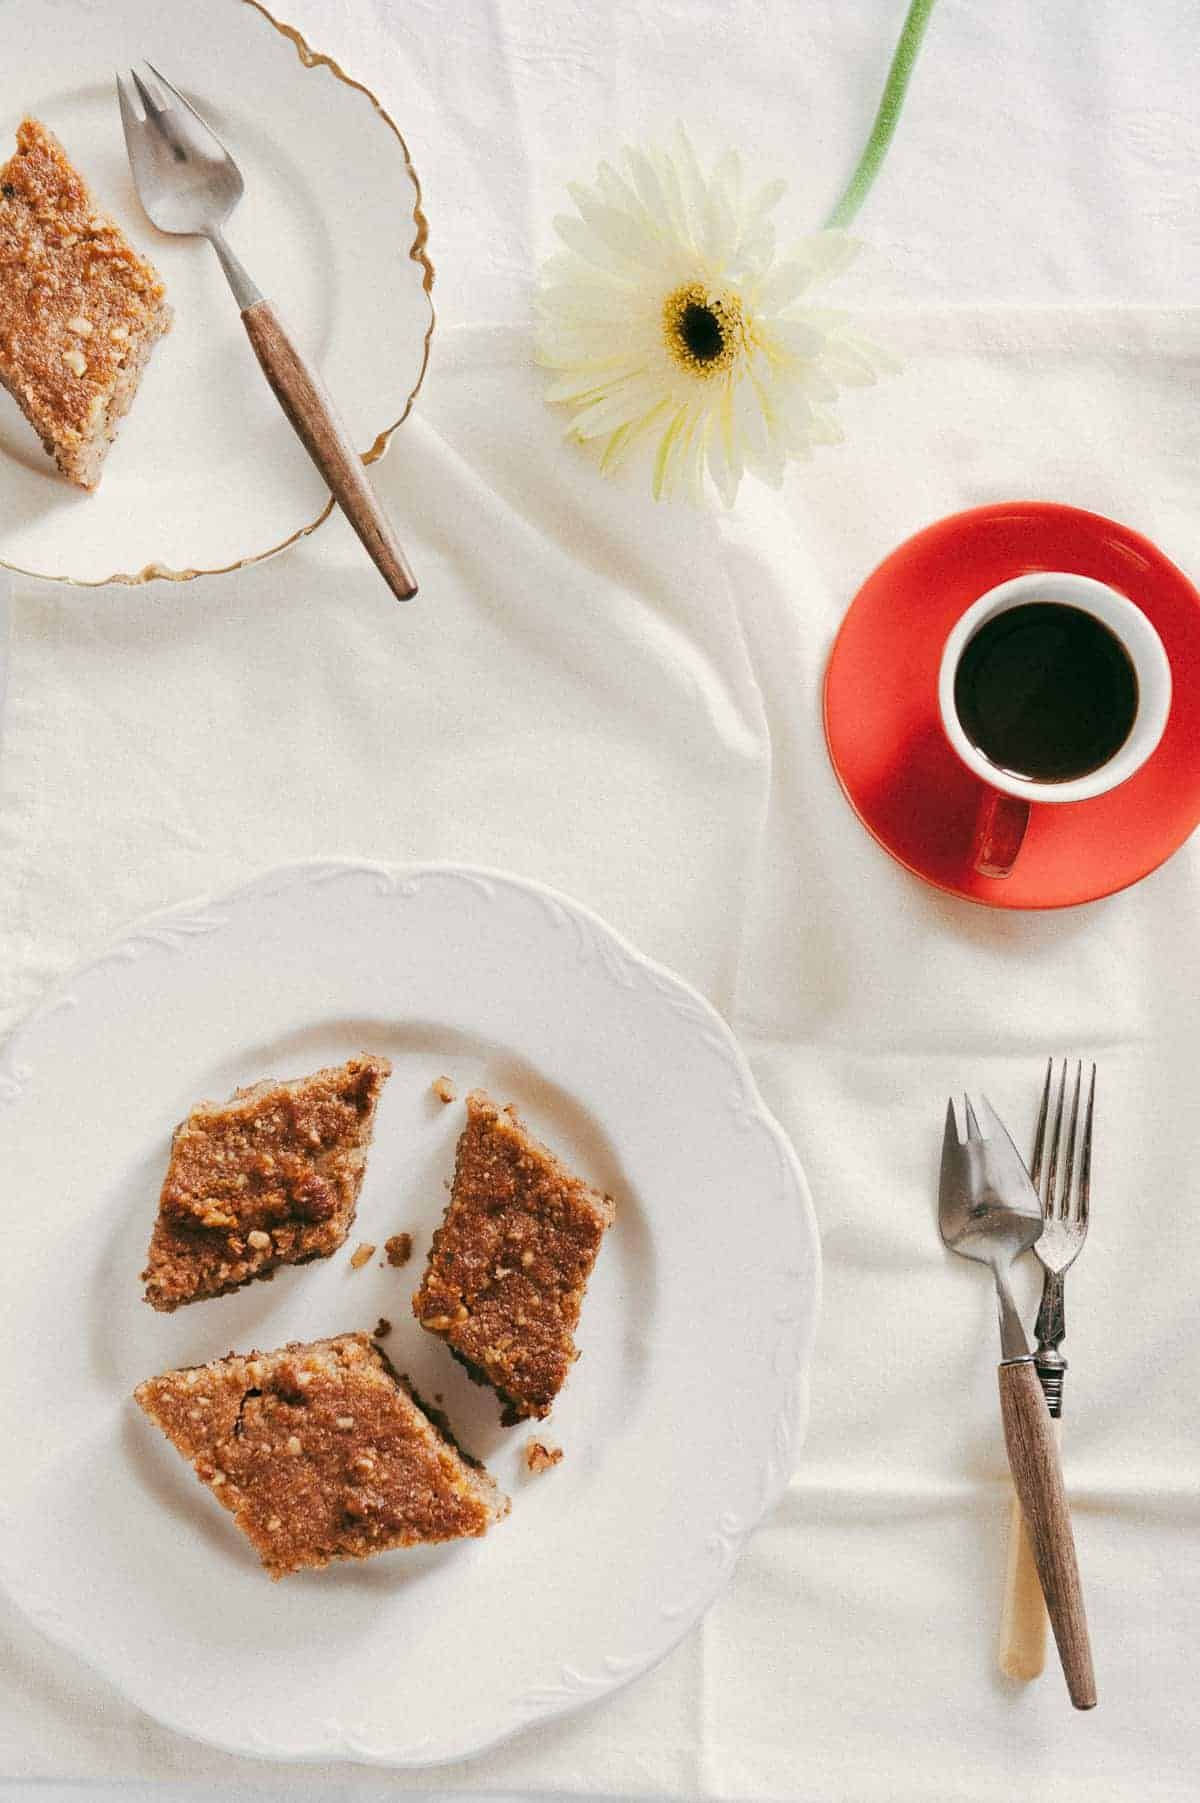 top down view of three slices of Greek walnut cake served on a white plate with a coffee and flowers